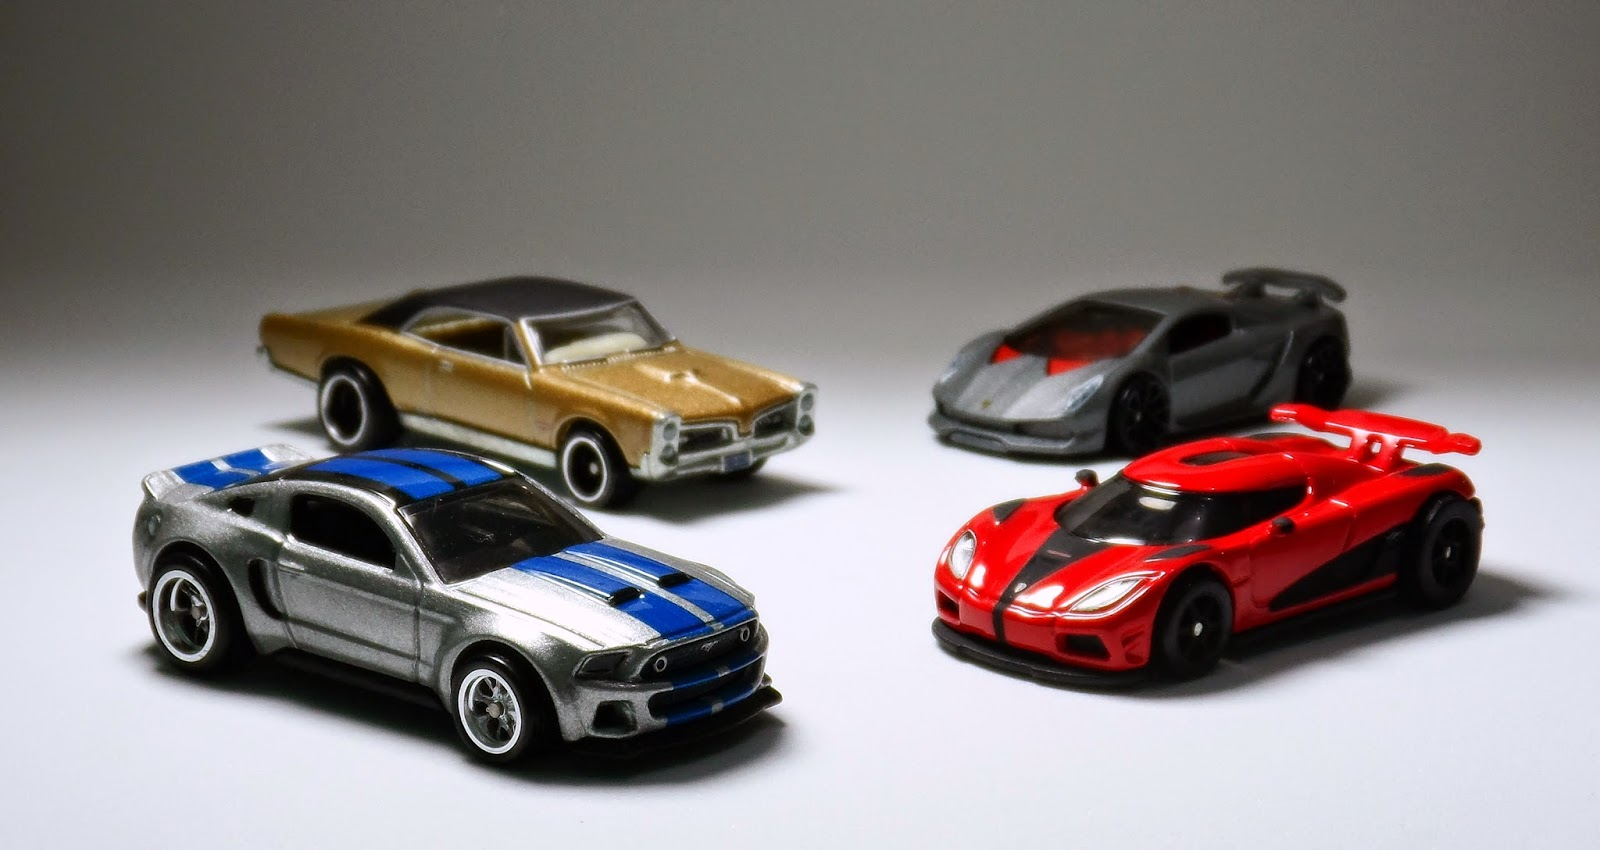 Filme Do Hot Wheels in especial filmes: 2014 ford mustang gt (need for speed)